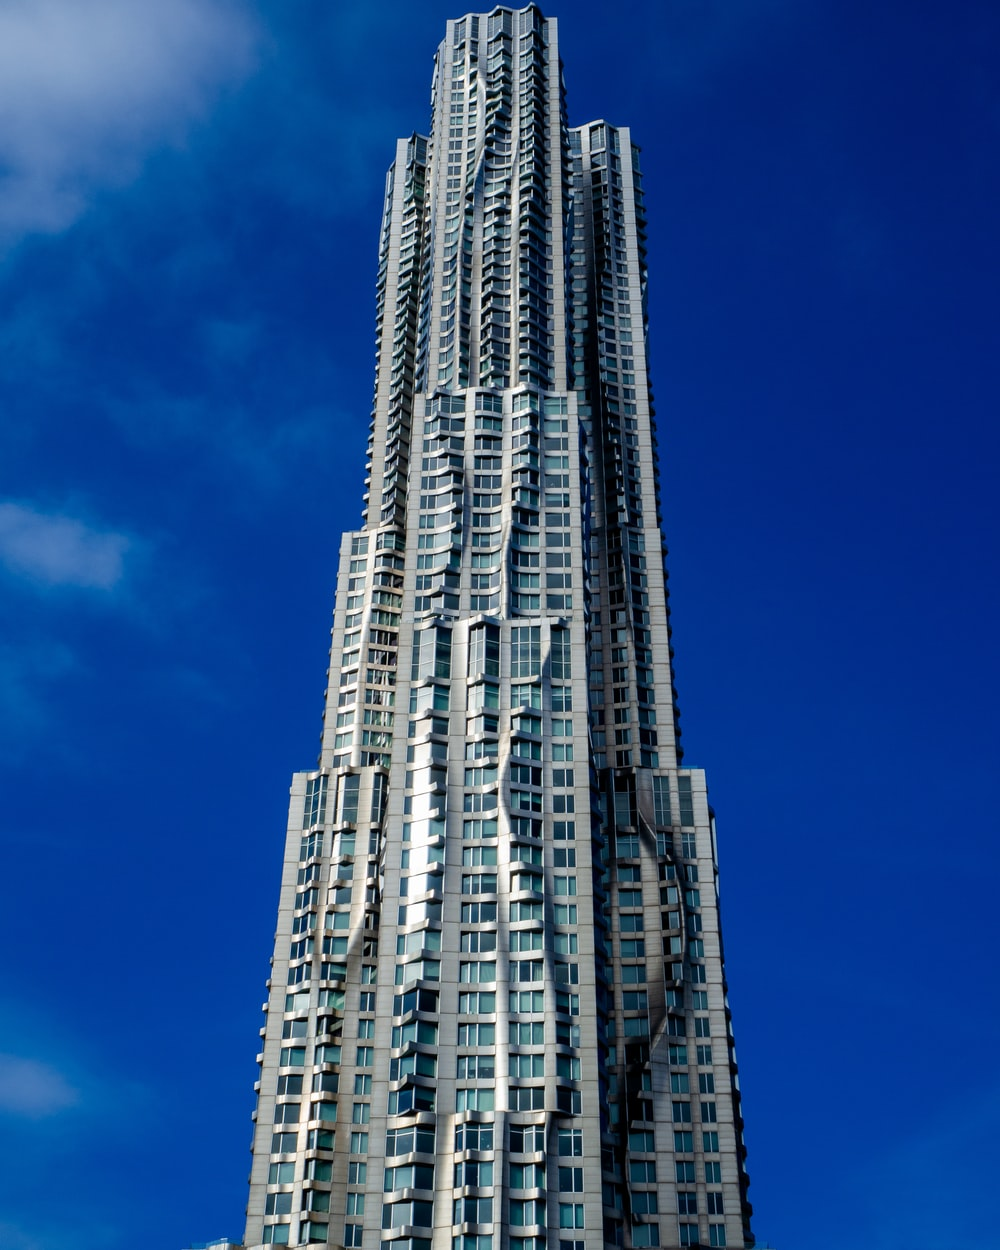 low angle photo of gray high rise building